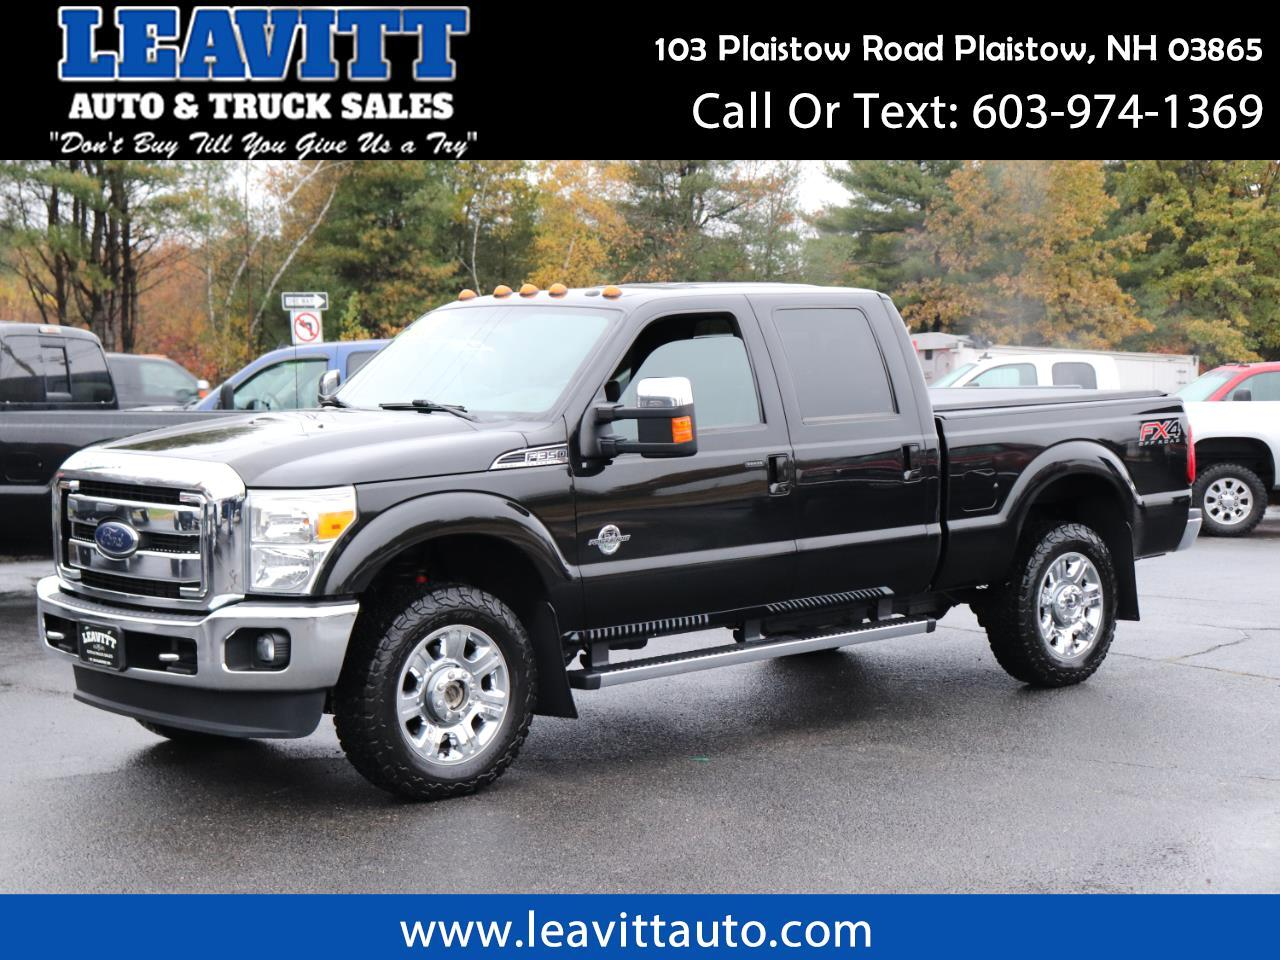 2014 Ford F-350 SD LARIAT CREW CAB 6.7L POWERSTROKE DIESEL LOADED!!!